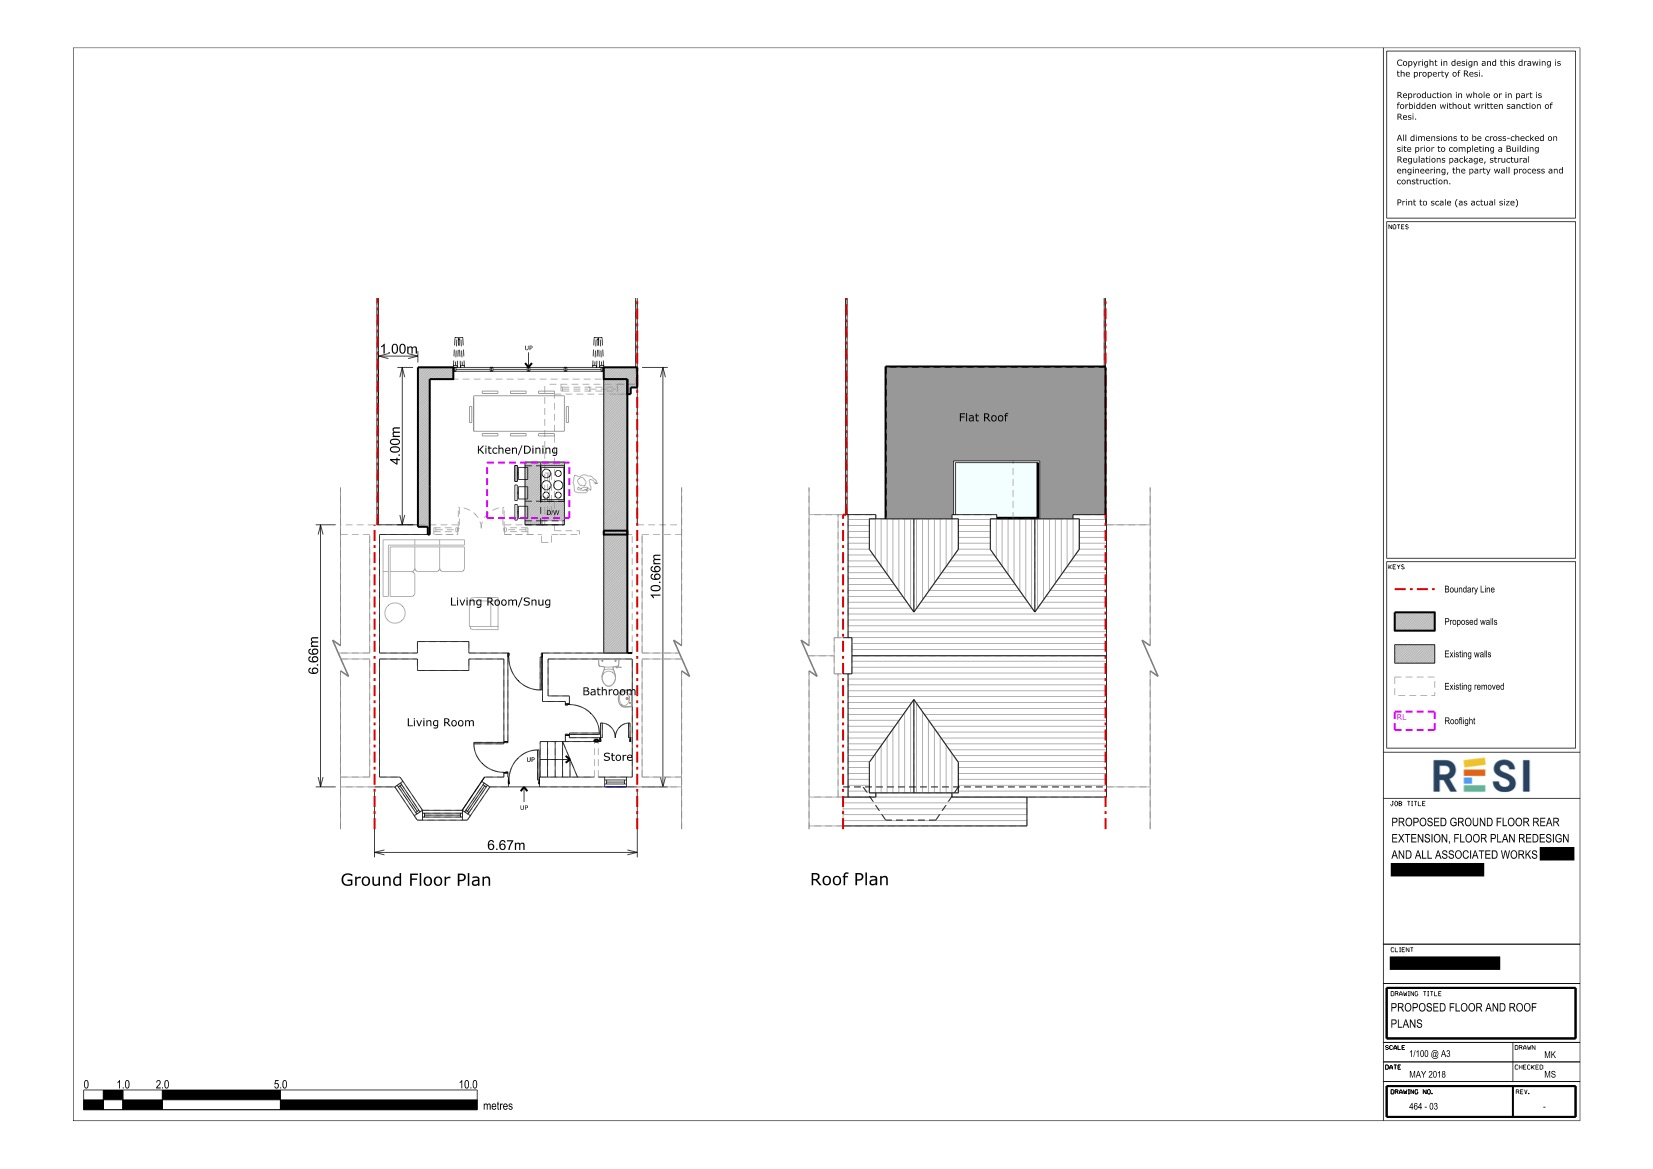 Architectural drawings 26   ground floor plans